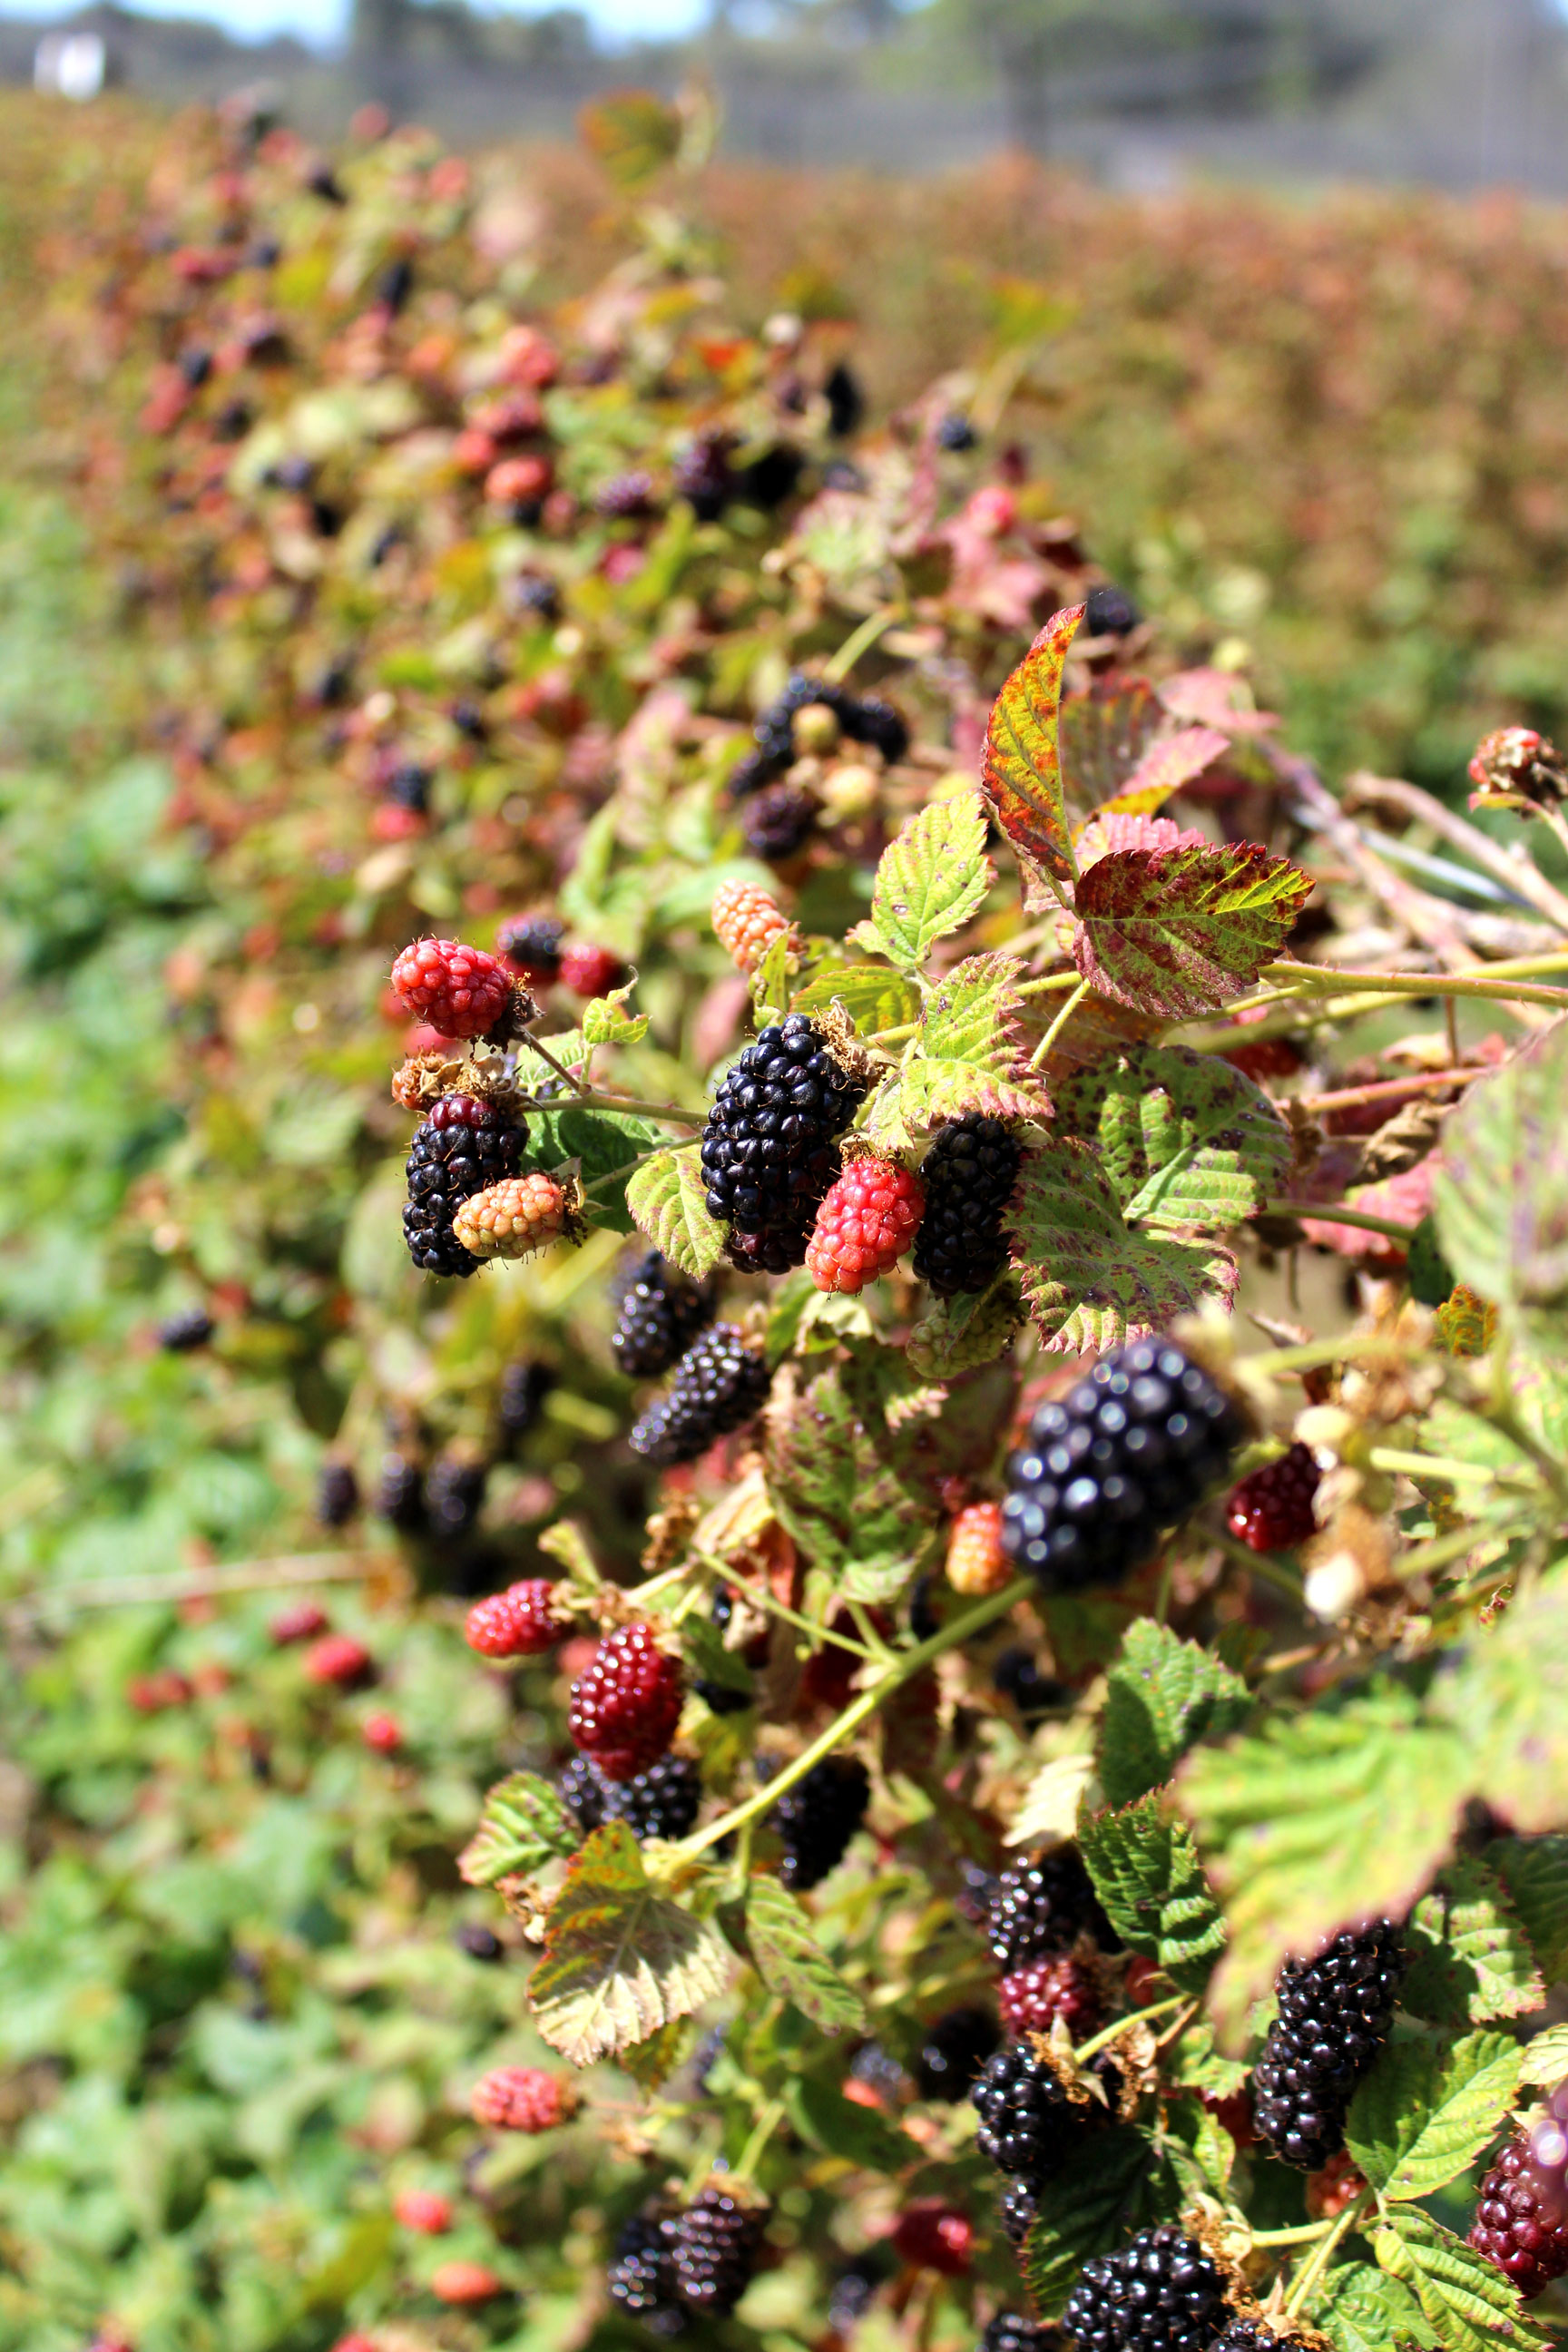 Summertime in Northern California - U-Pick Olallieberries at Swanton Farm | Sundays and Somedays